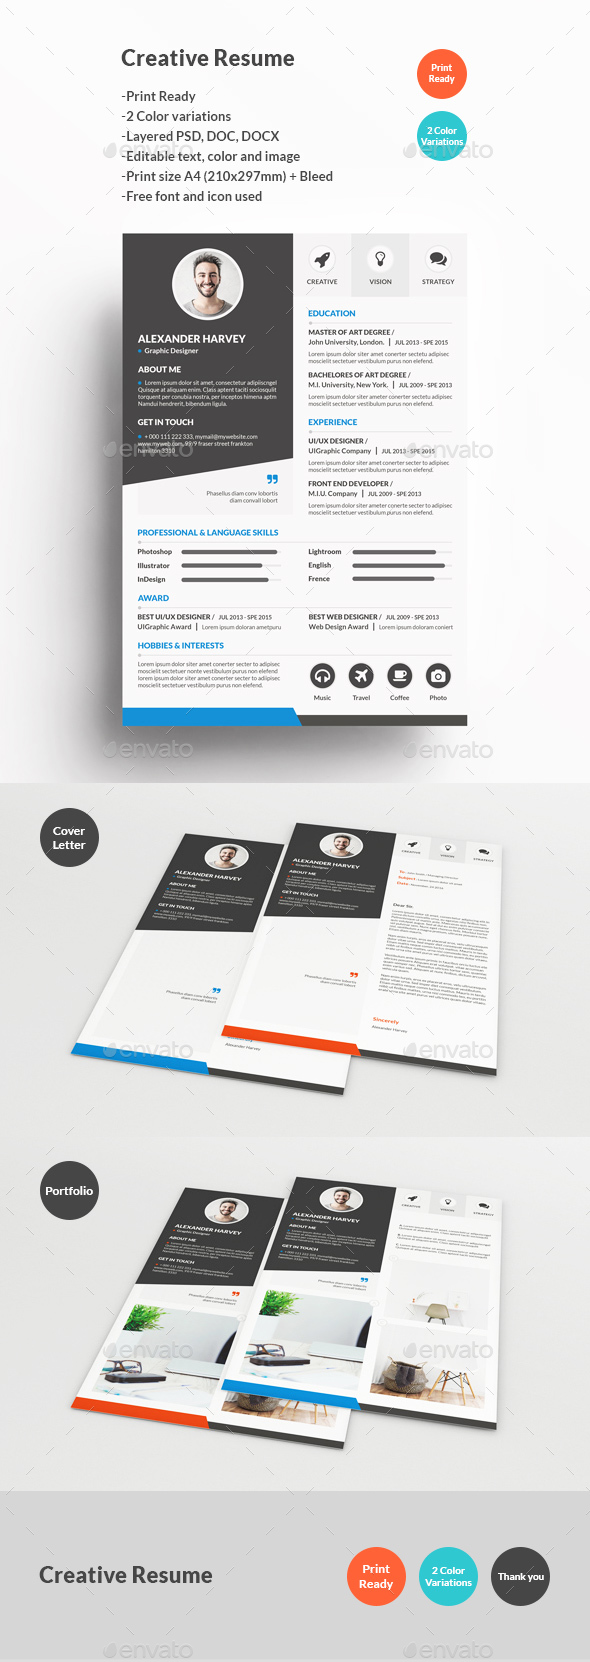 Creative Resume by KhidD | GraphicRiver